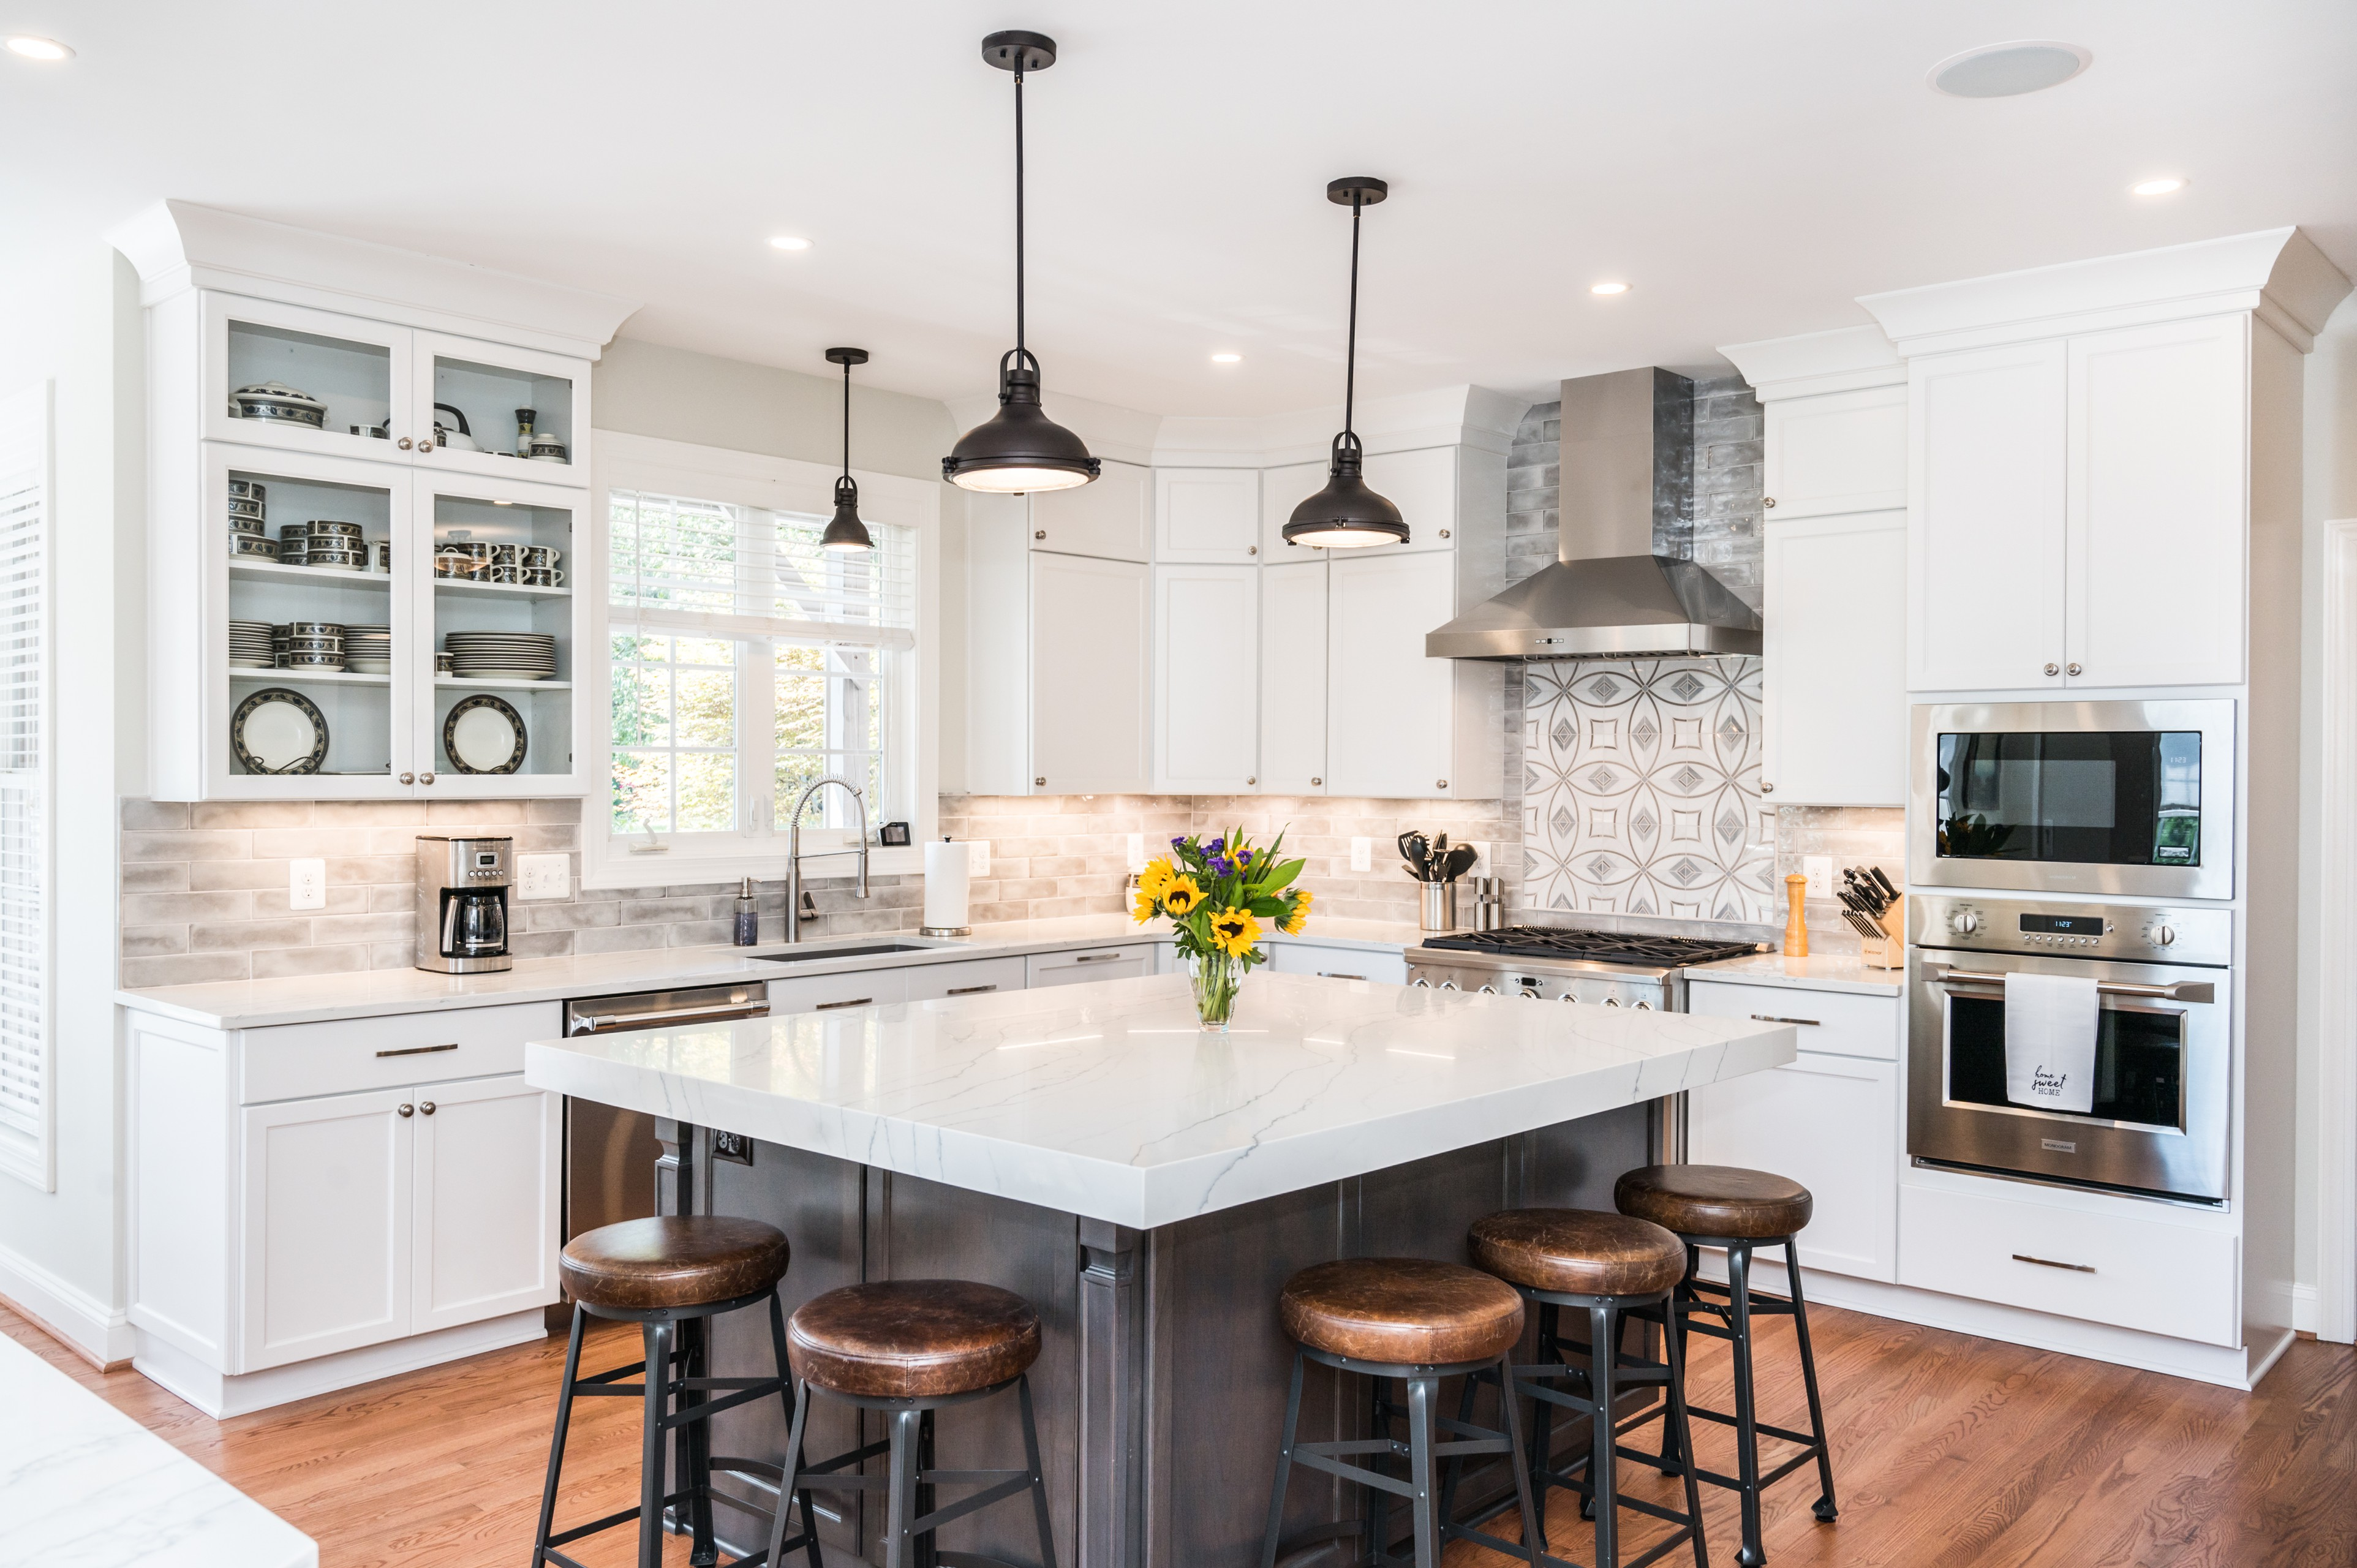 White Shaker Kitchen with Chunky Island Countertop